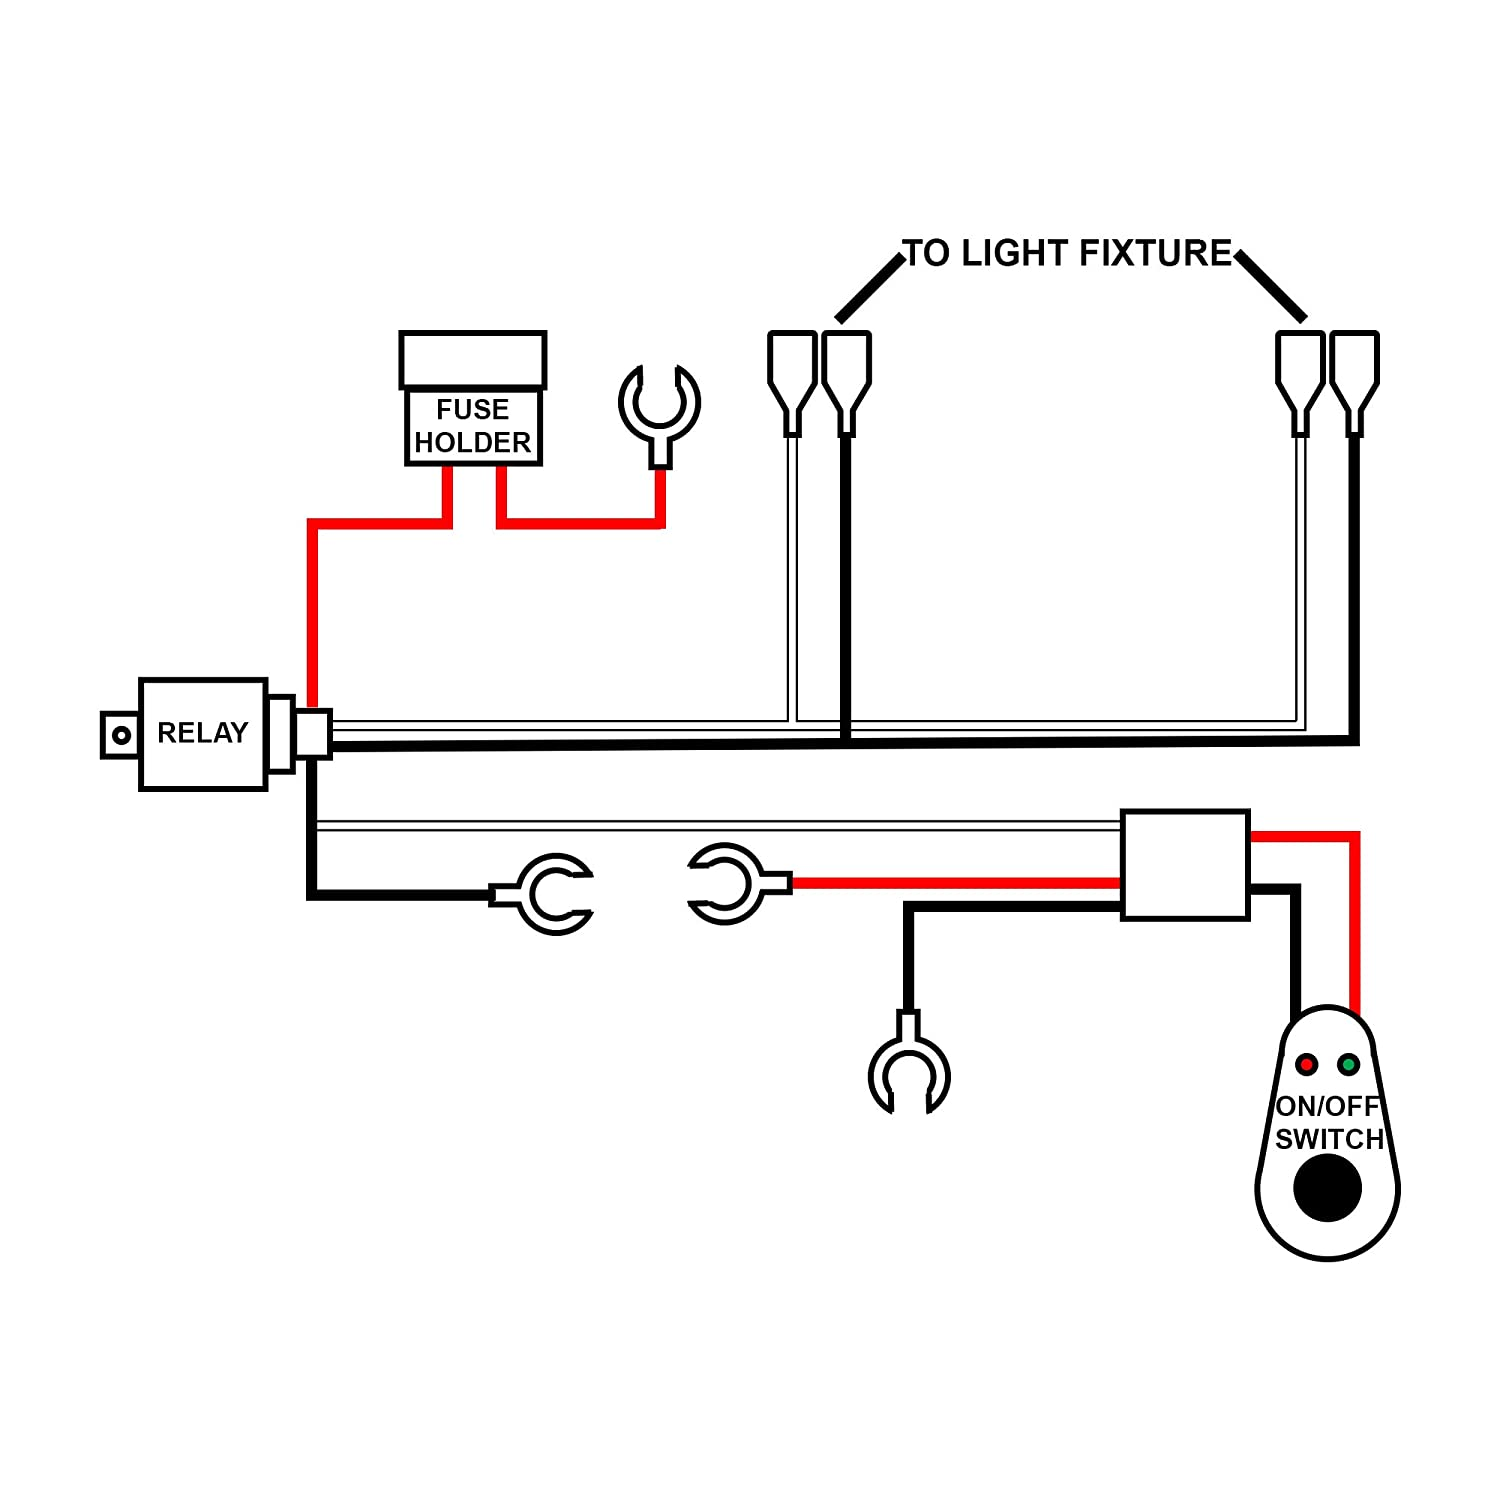 71fqGUyUJ5L._SL1500_ work light wiring diagram two light wiring diagram \u2022 free wiring Off-Road Light Wiring Diagram at readyjetset.co